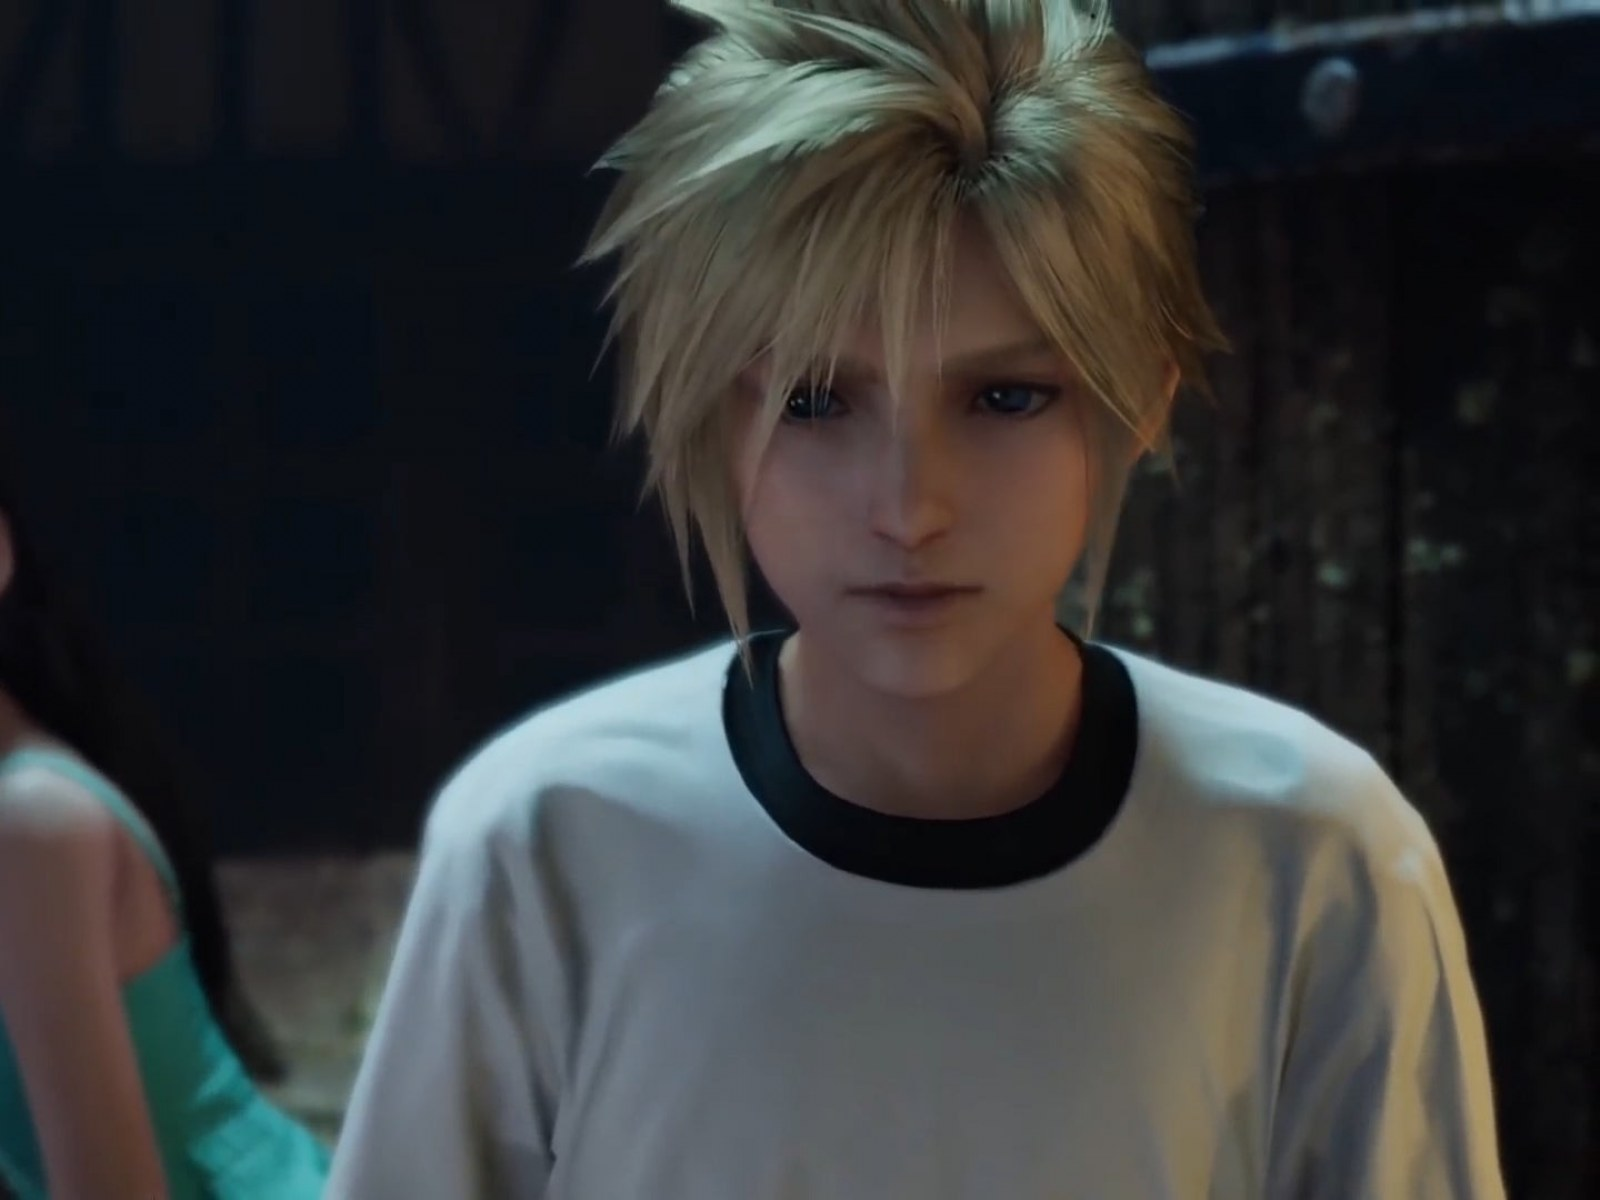 Final Fantasy Vii Remake Theme Revealed In New Trailer Cloud Is